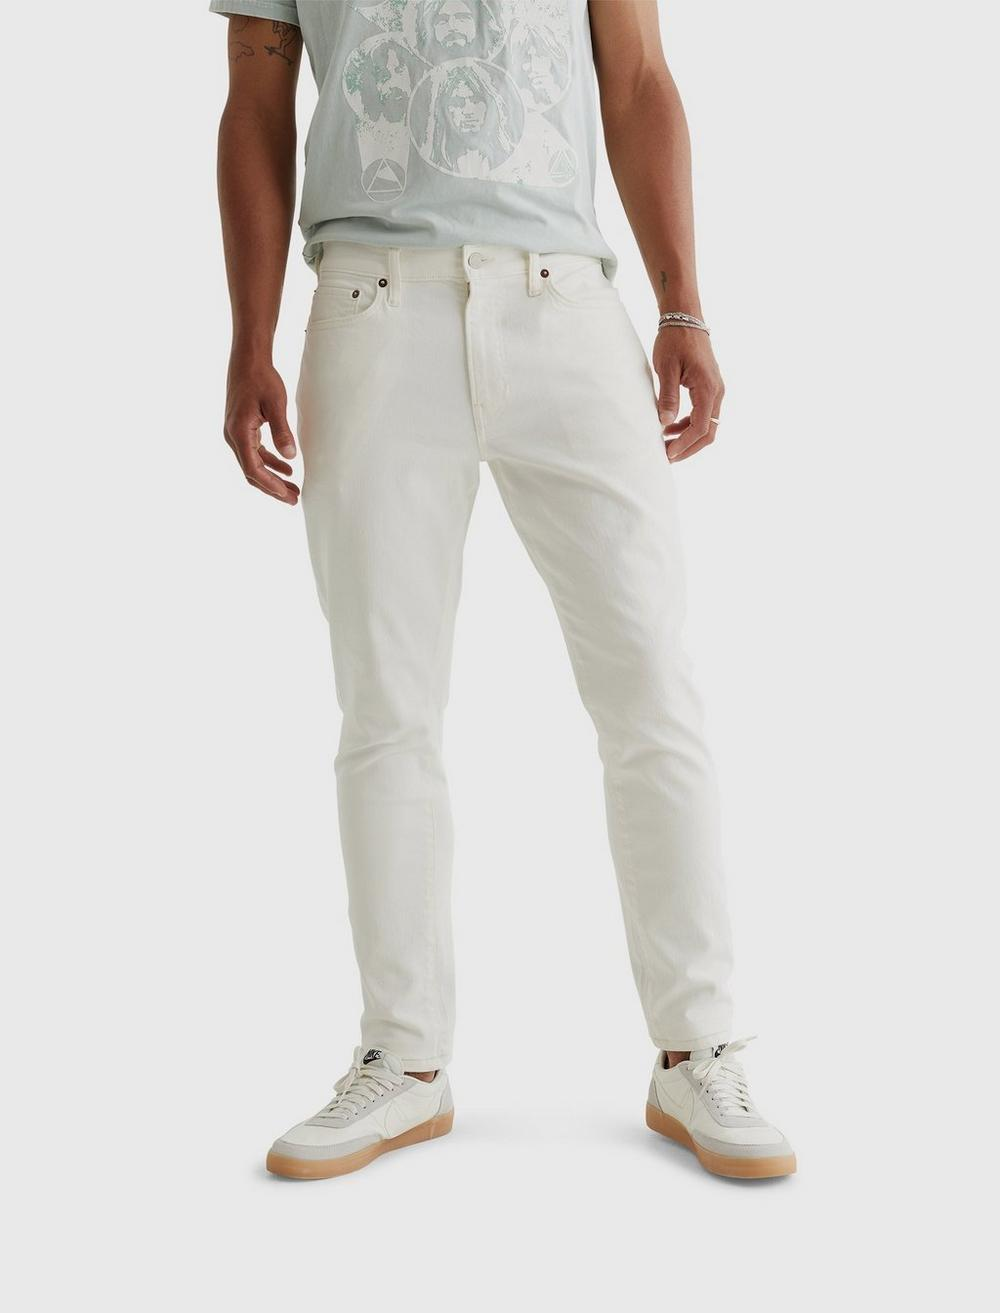 411 ATHLETIC TAPER COMFORT STRETCH JEAN, image 1